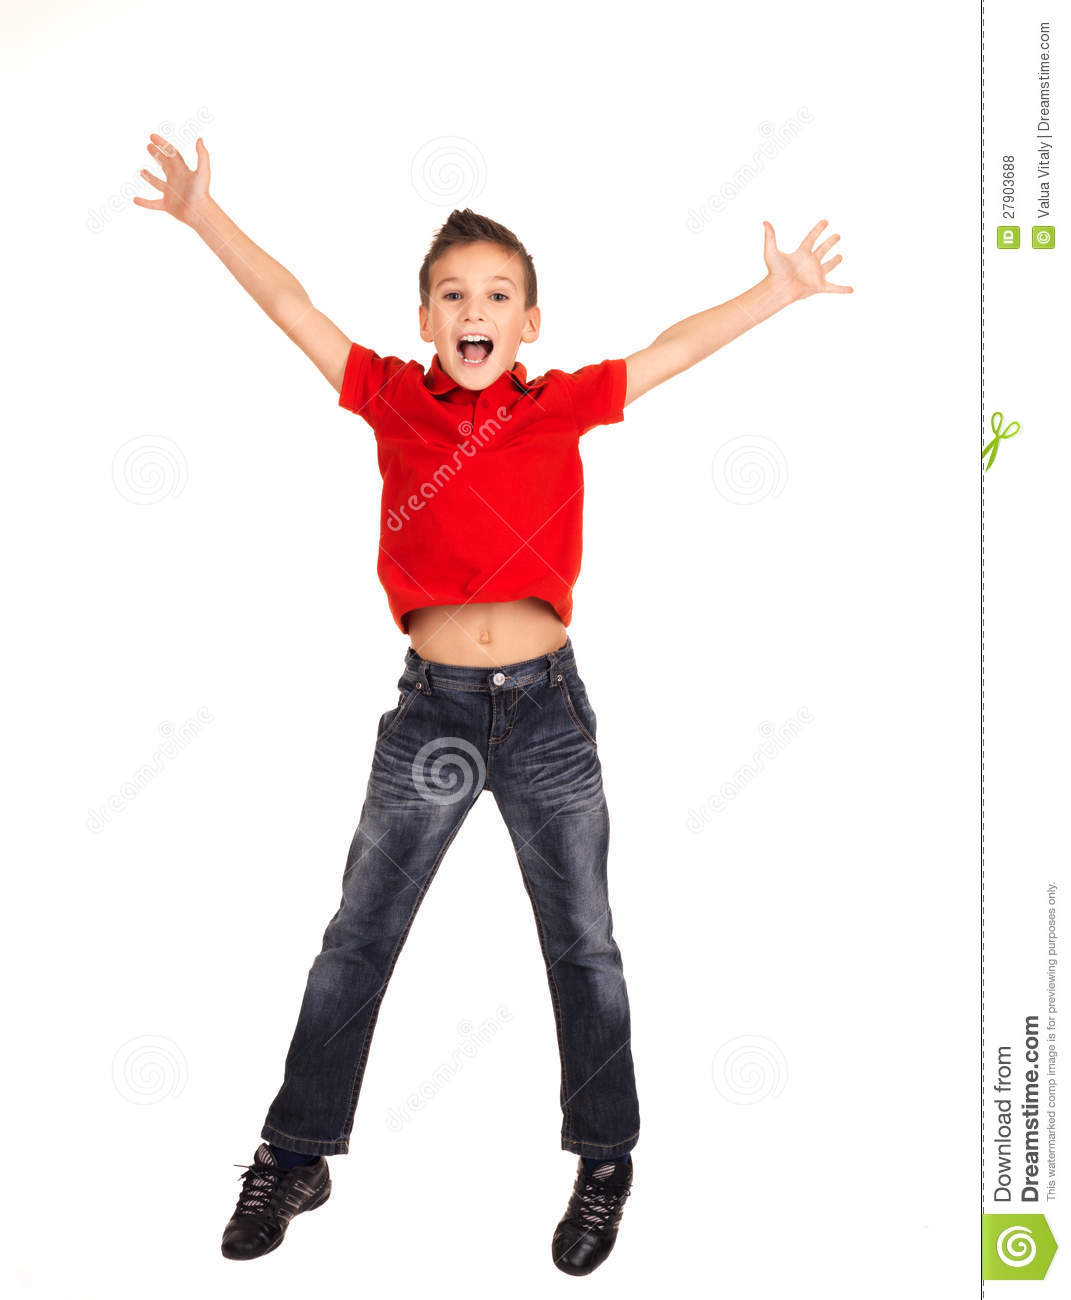 Happy Boy Jumping With Raised Hands Up Stock Photo